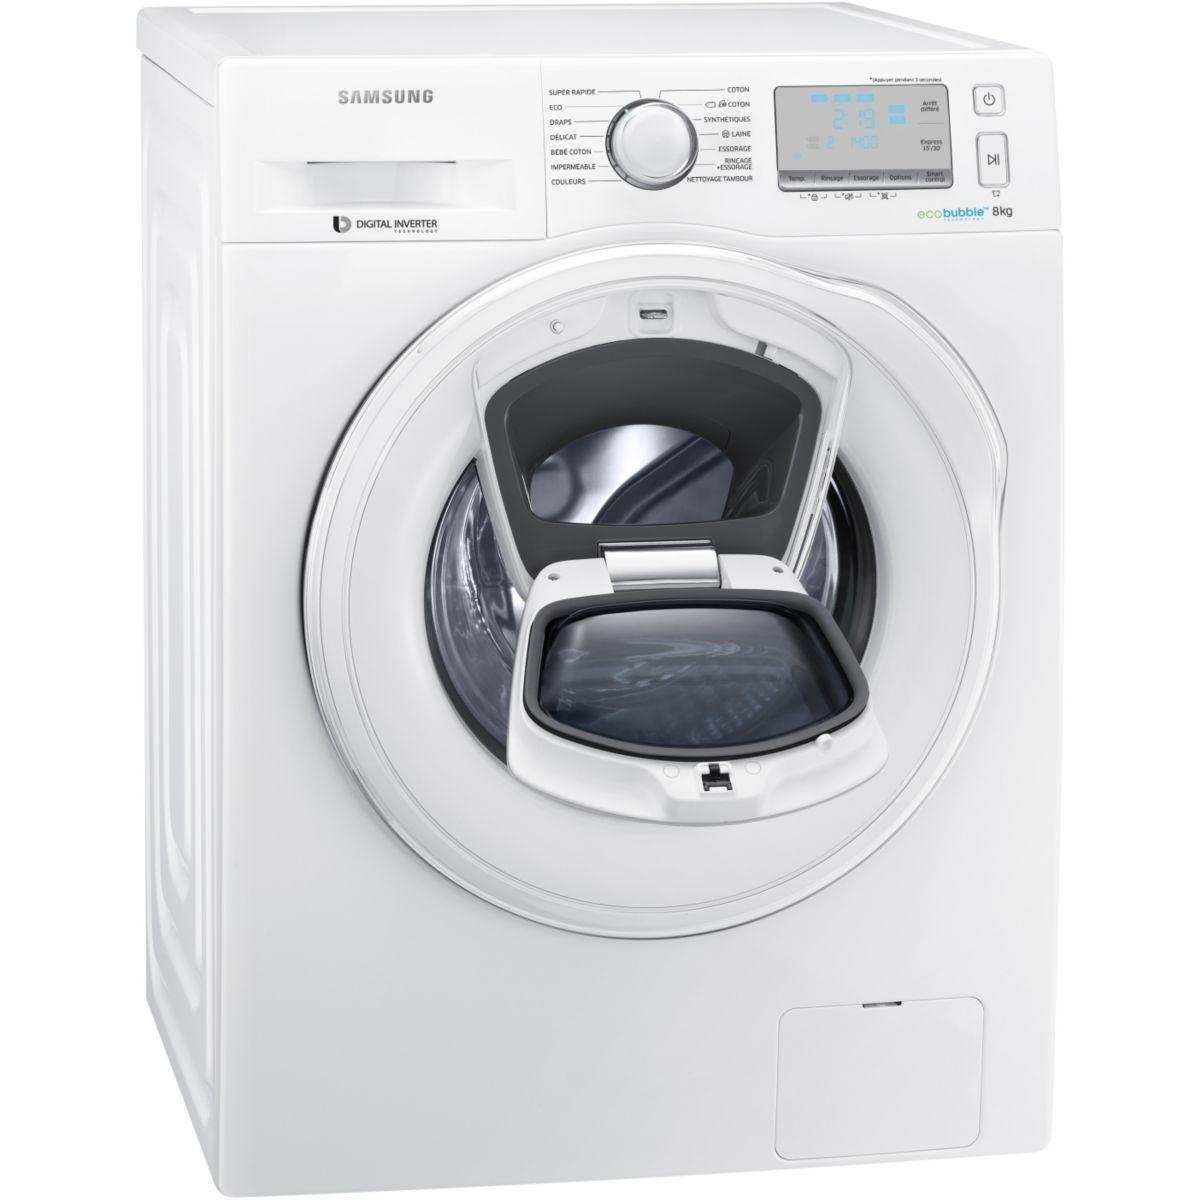 lave linge frontal samsung wf70f5e5w4x lave linge samsung in mauritius lave linge frontal. Black Bedroom Furniture Sets. Home Design Ideas